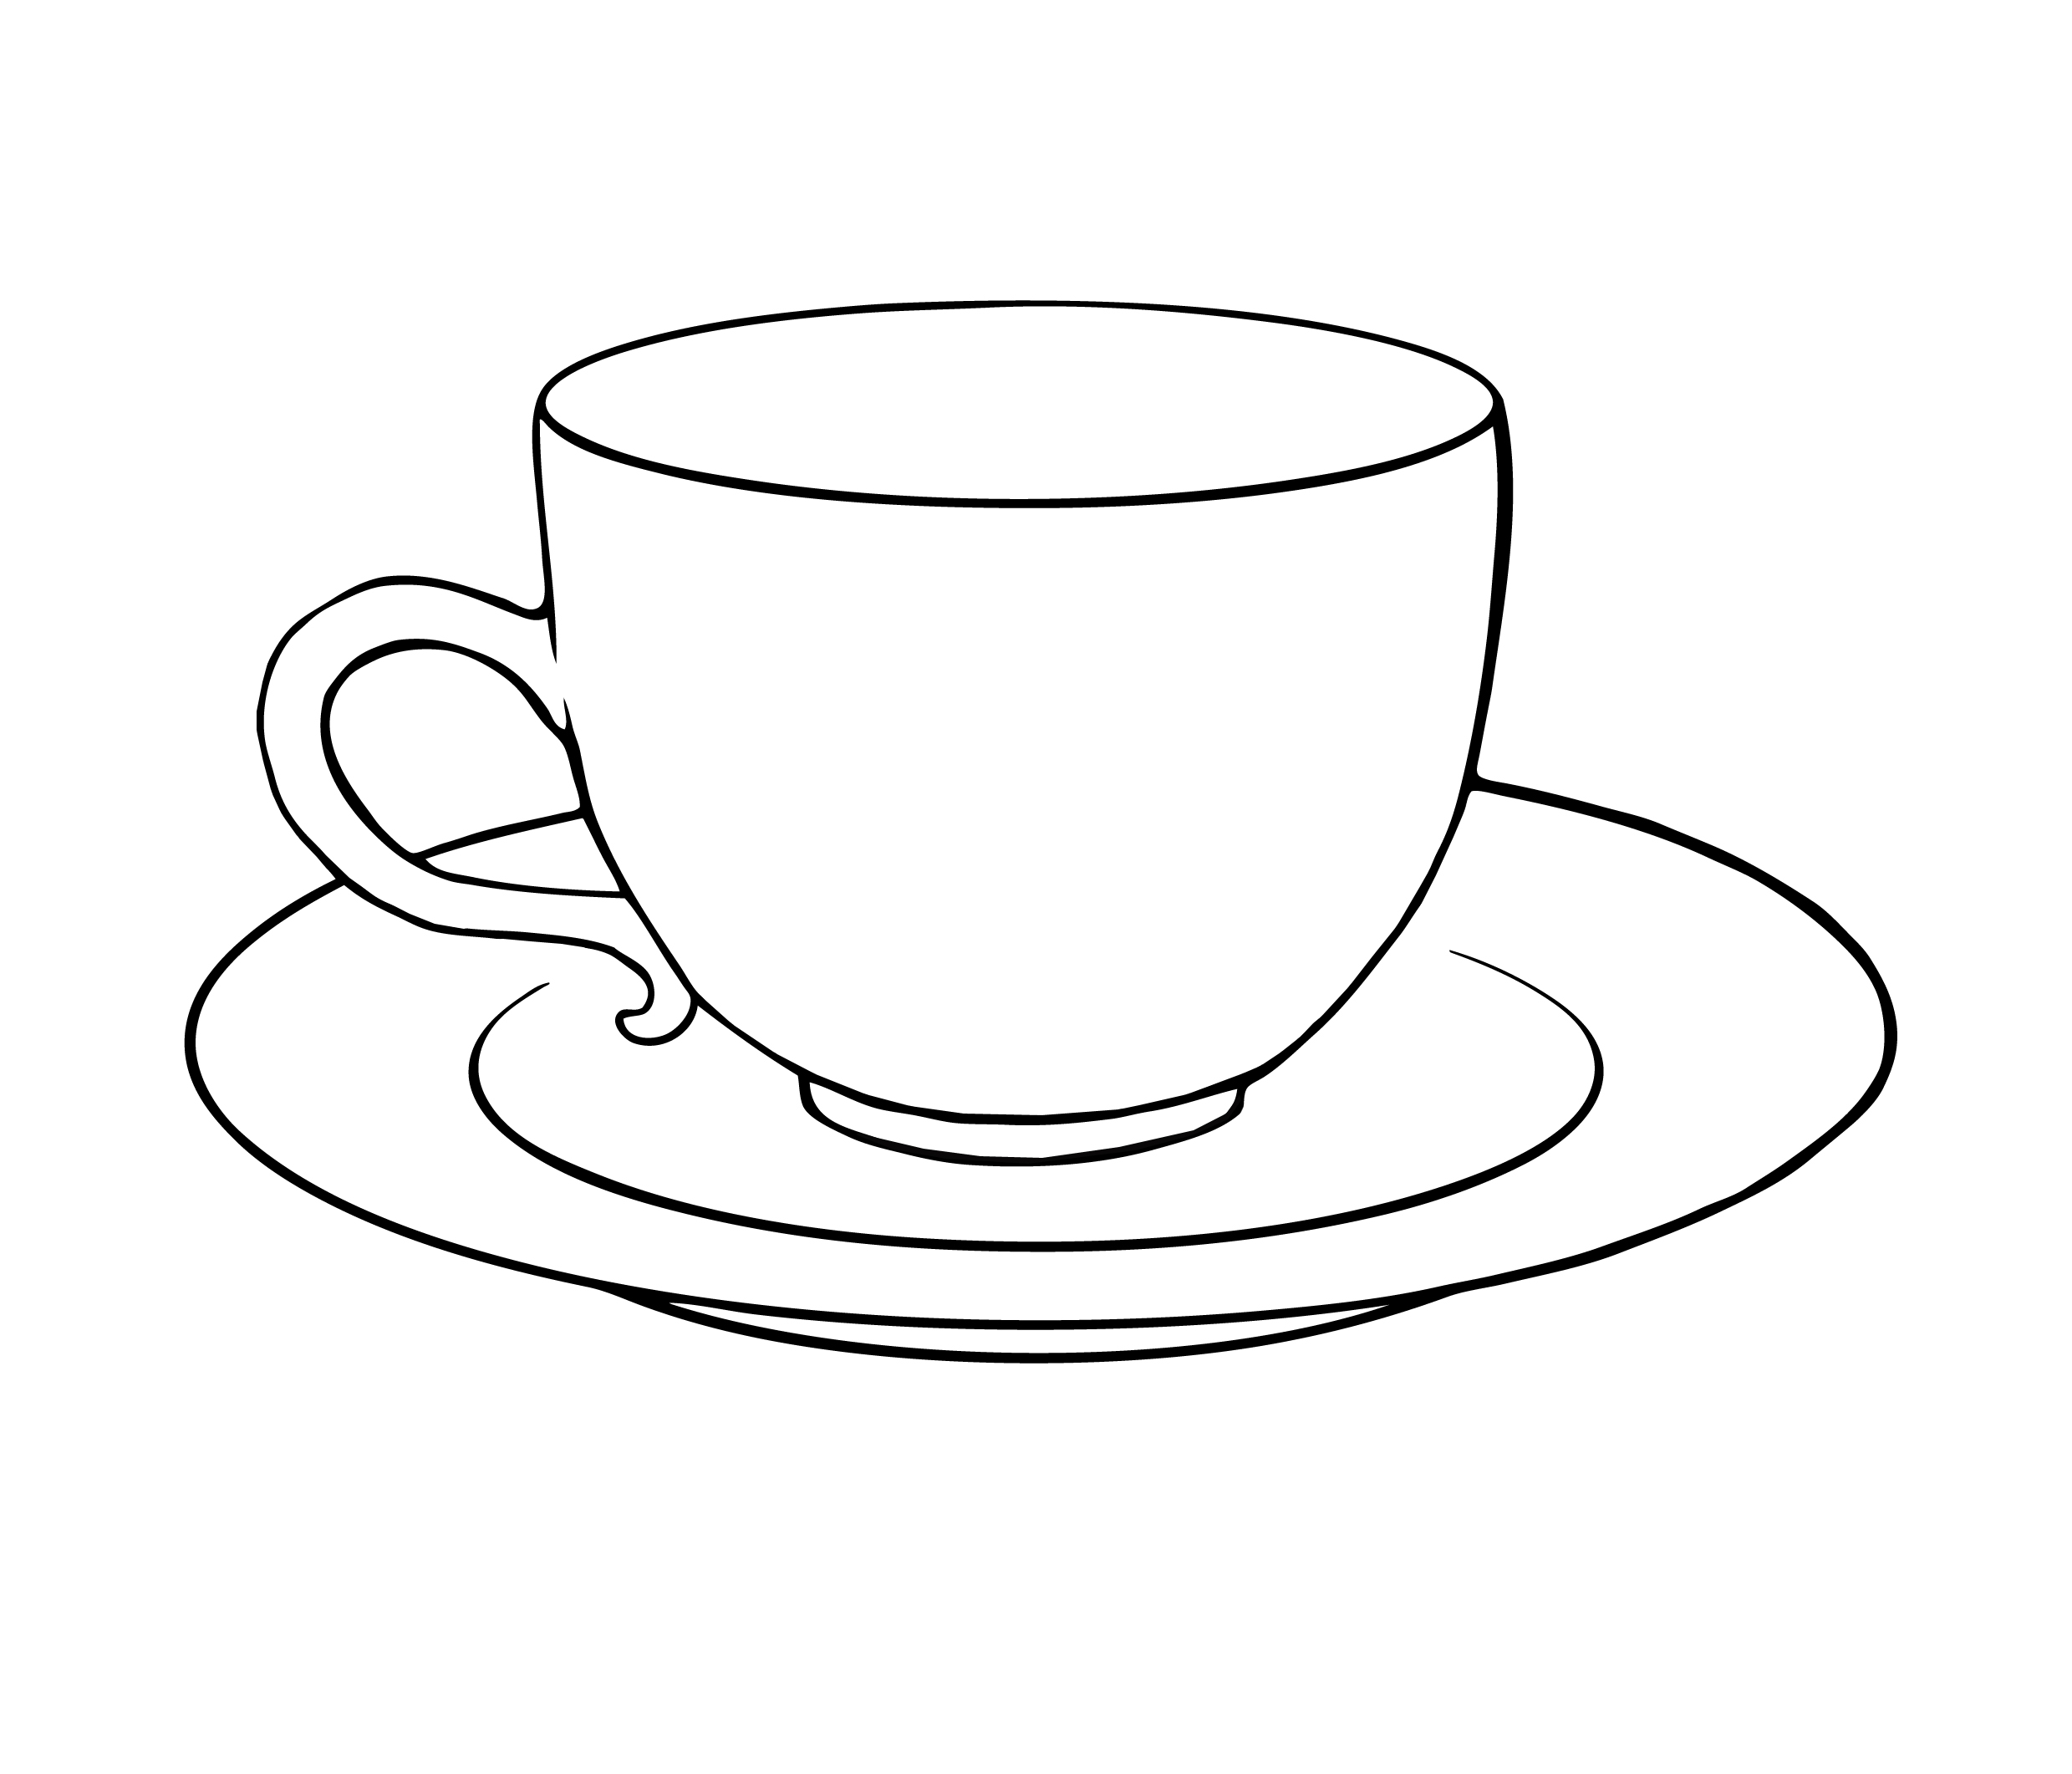 Tea Cup Saucer Colouring Pages-Tea Cup Saucer Colouring Pages-11